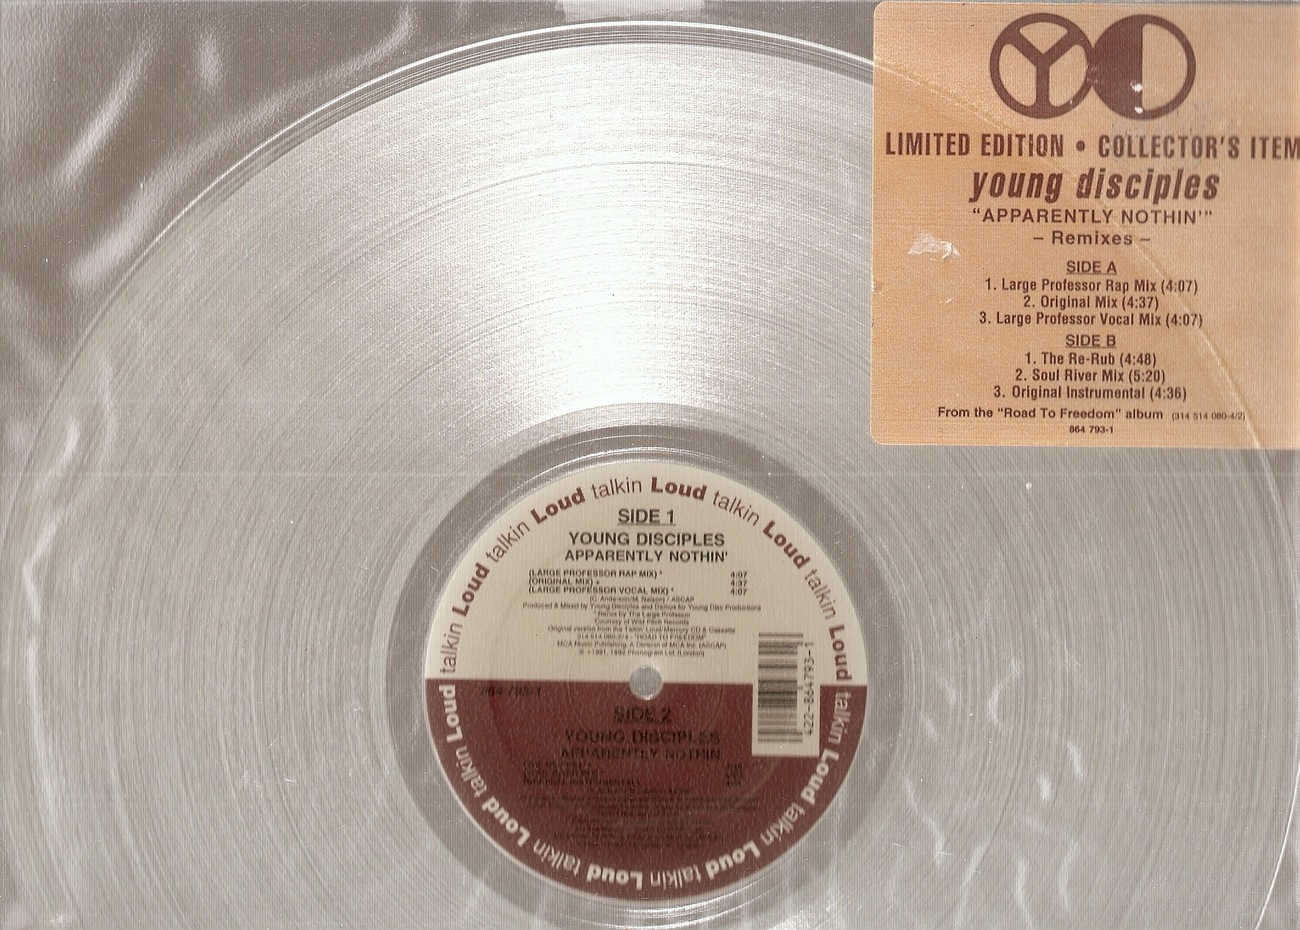 LP--Apparently Nothin' limited edition clear vinyl-- Young Disciples